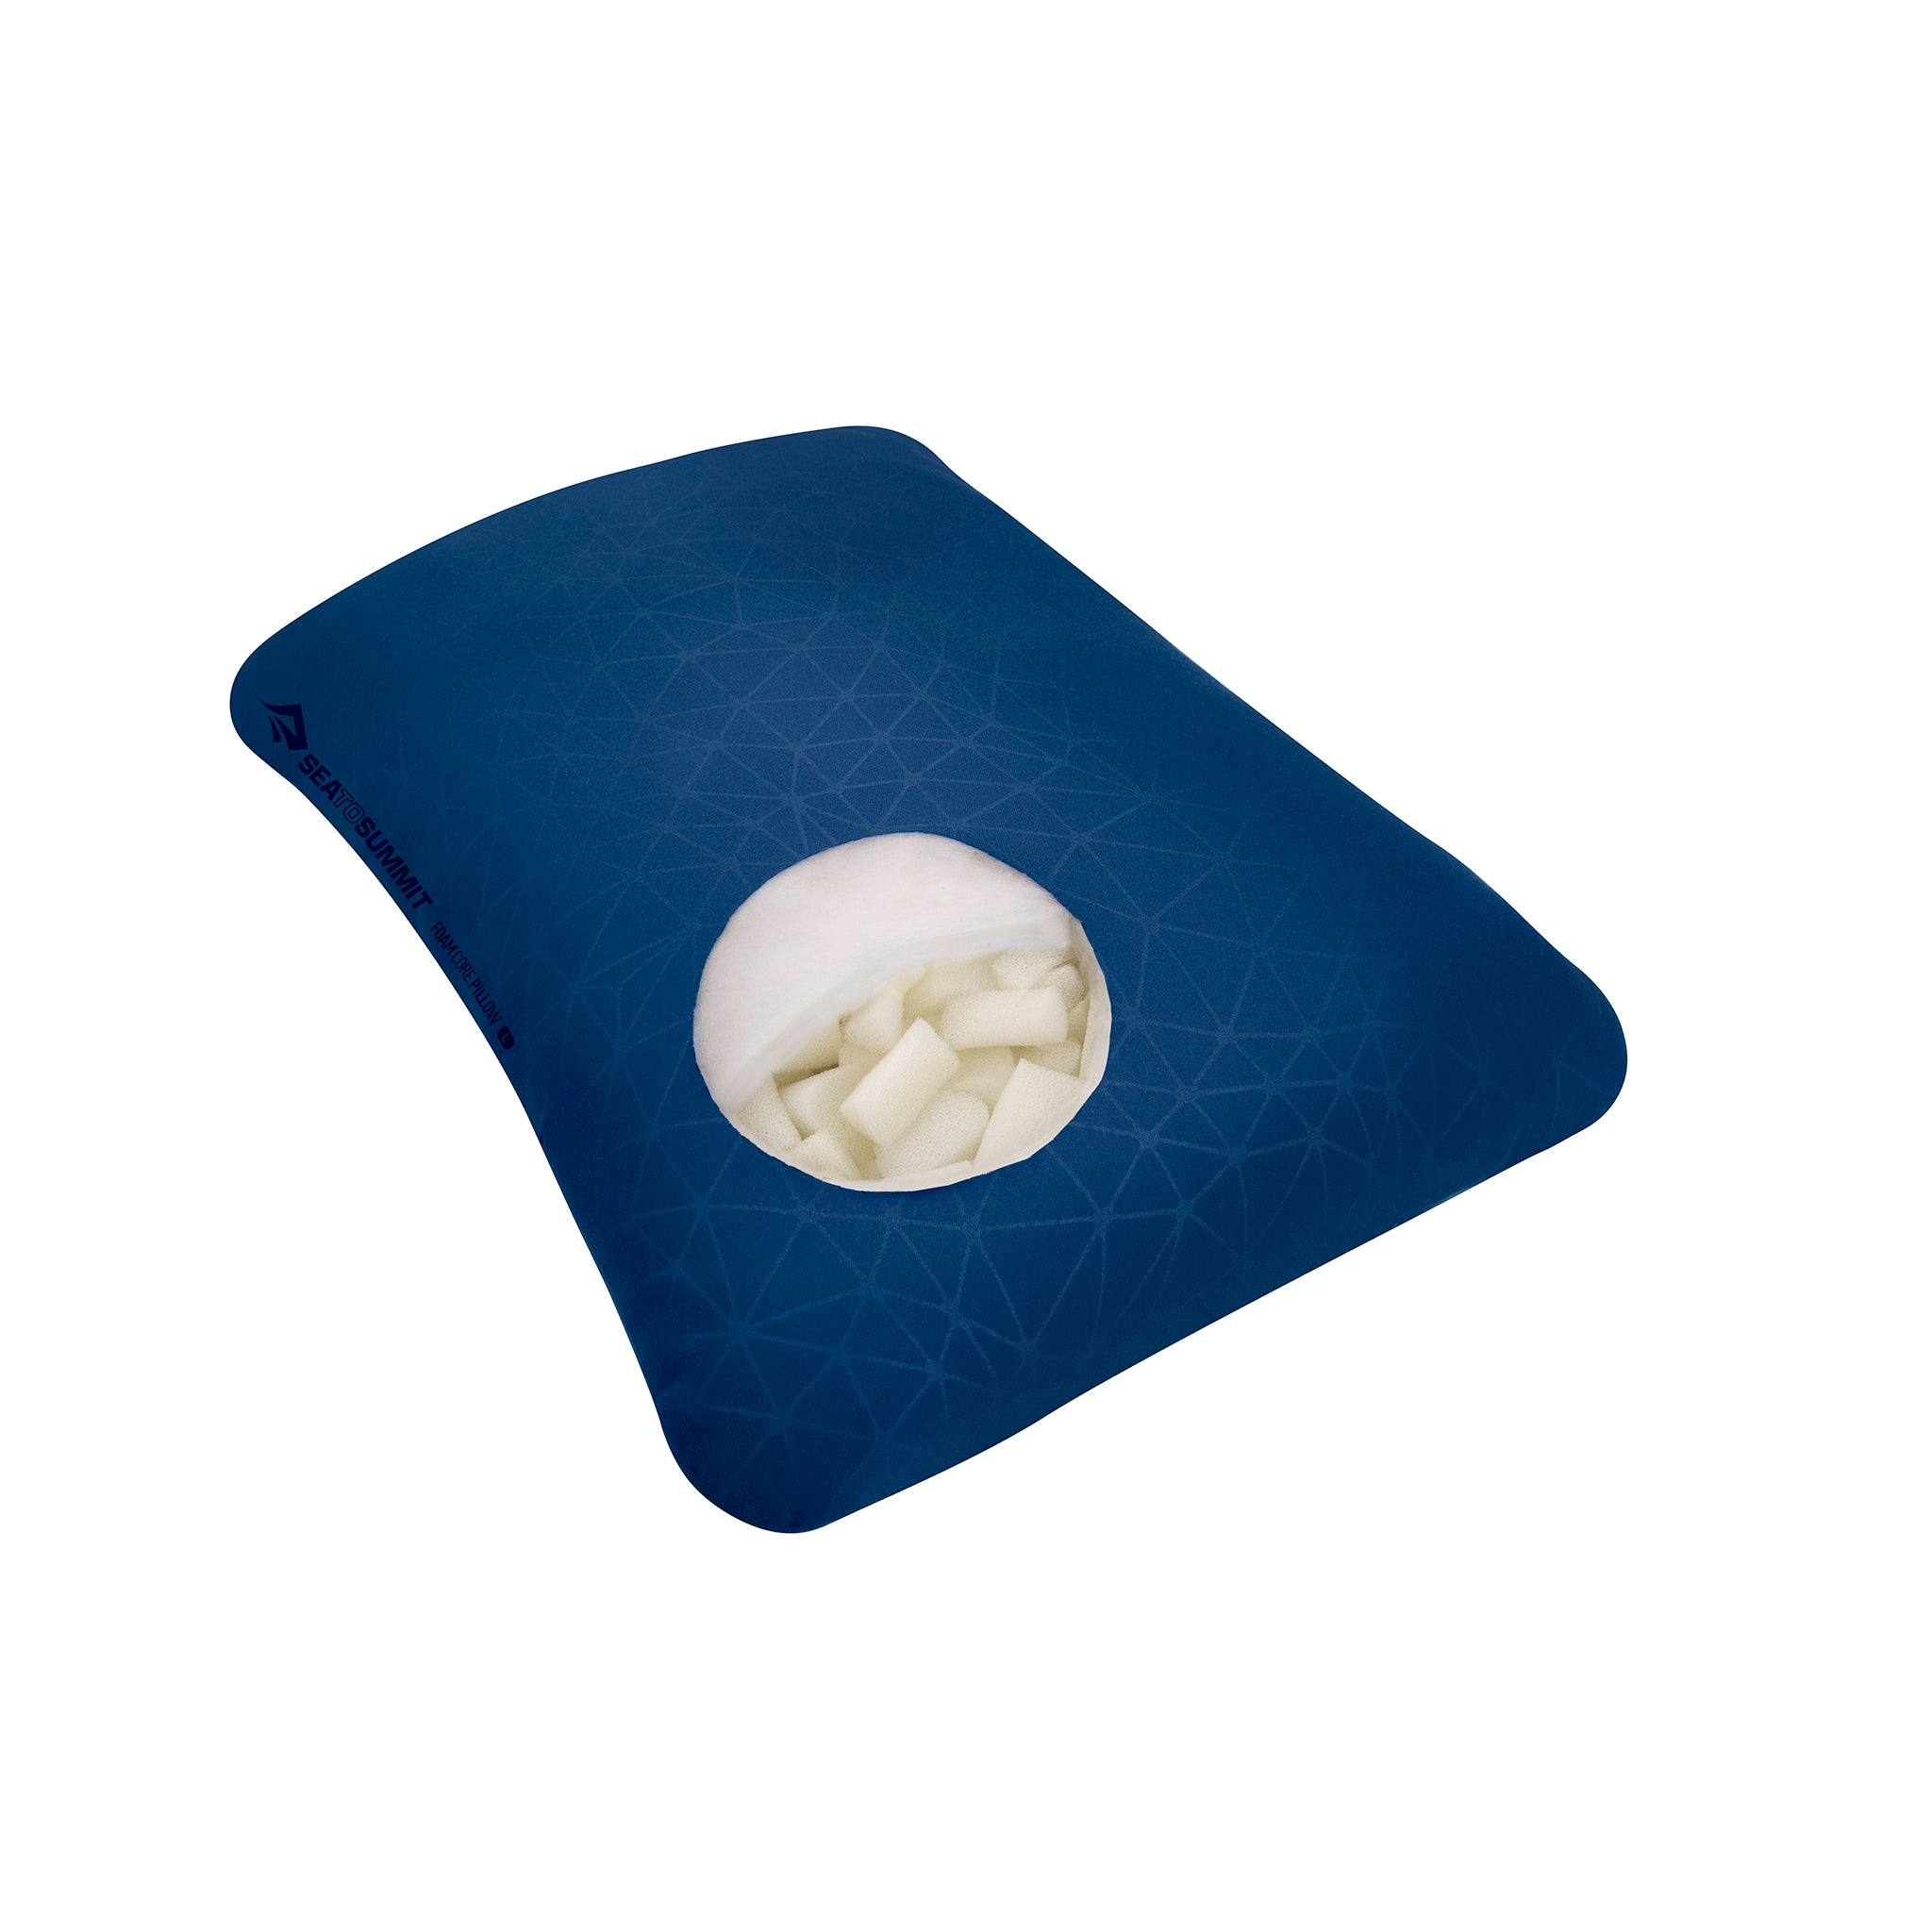 Foamcore Travel Pillow _ Navy Blue _ Full Size